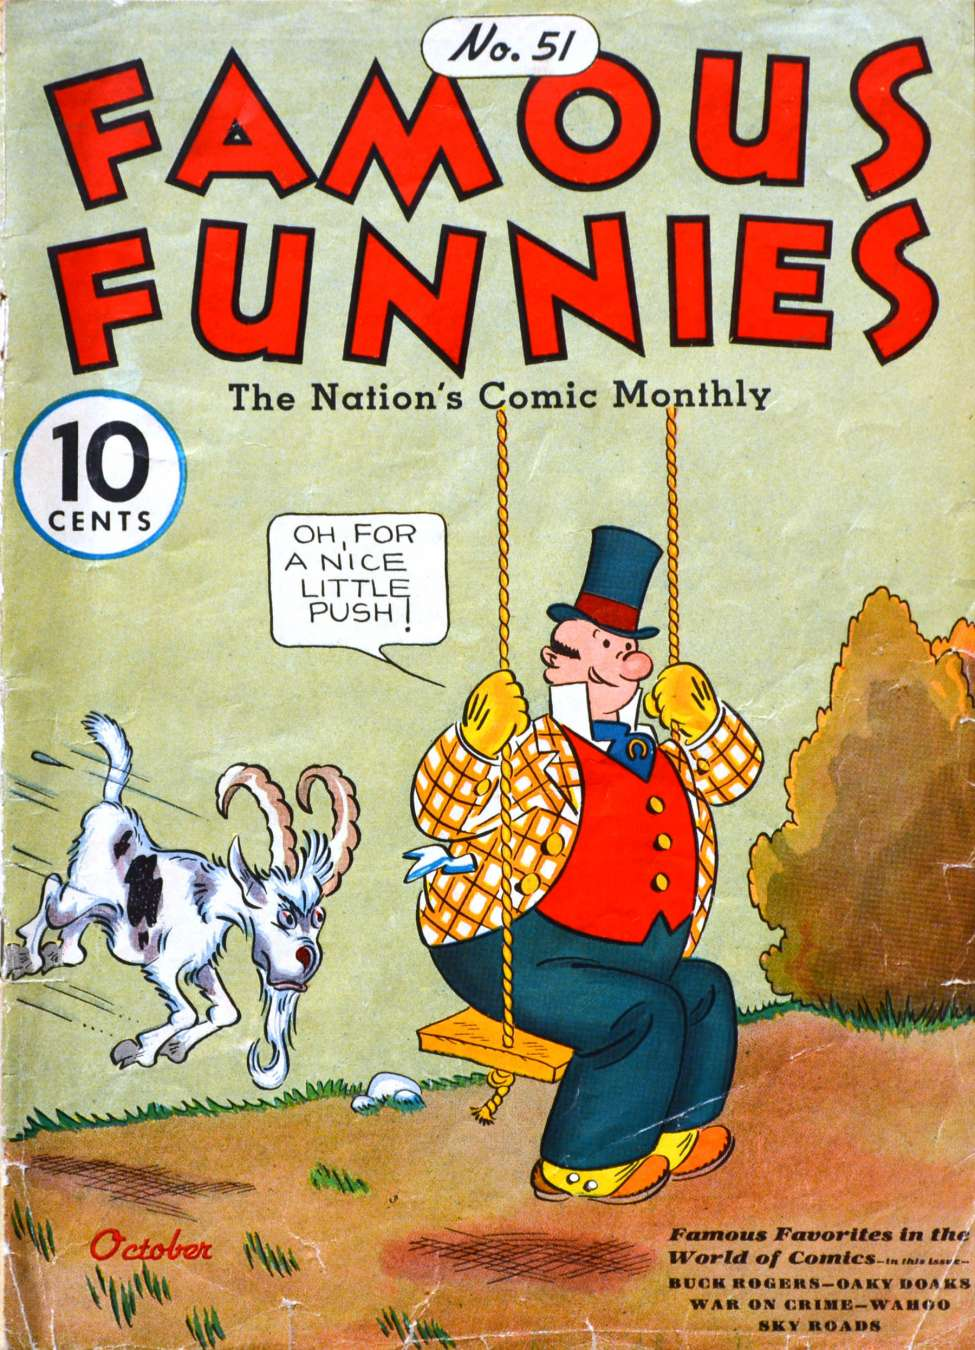 Comic Book Cover For Famous Funnies #51